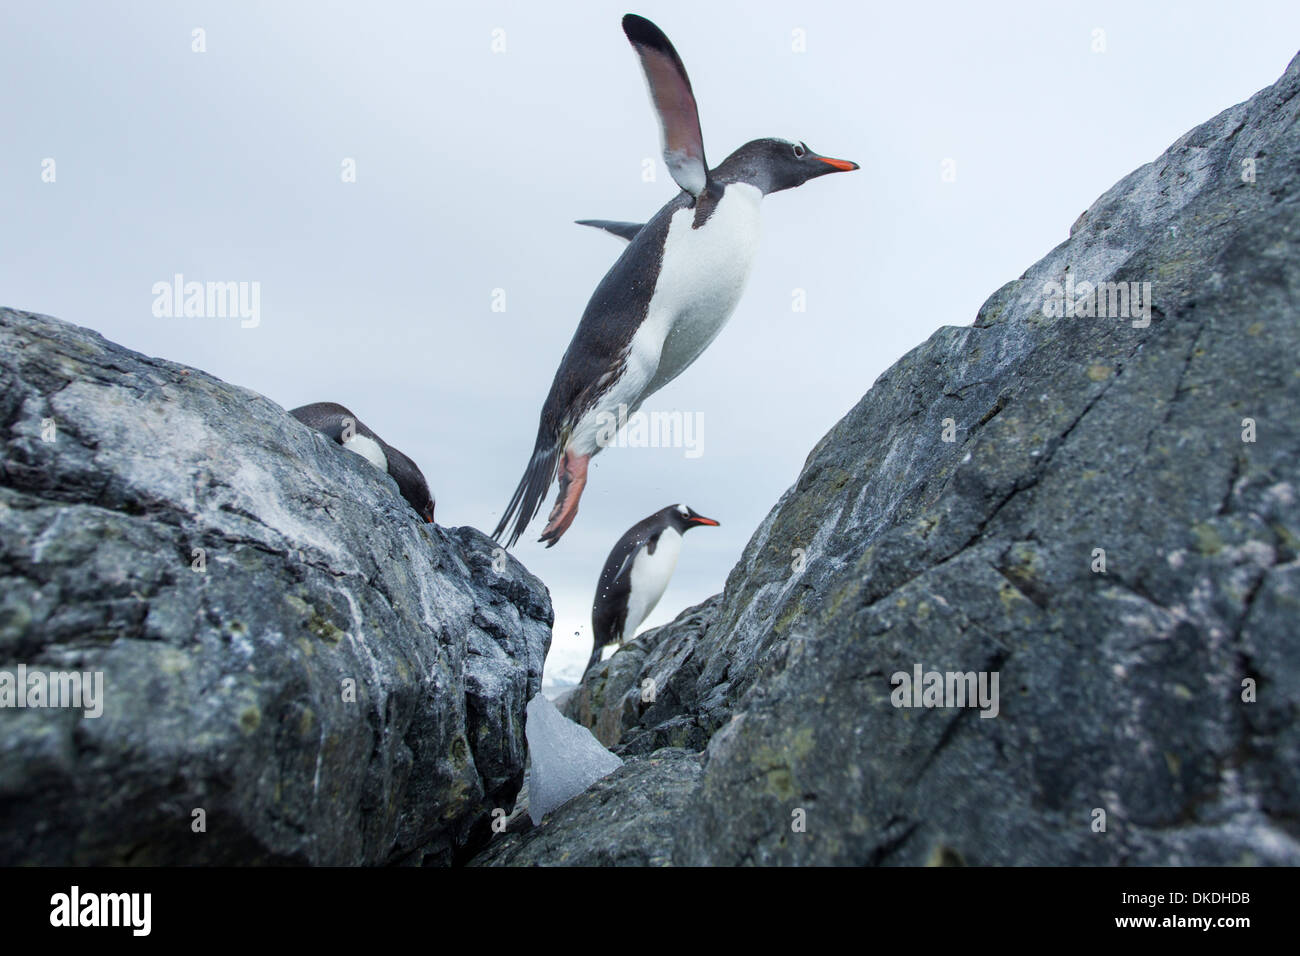 Antarctica, Cuverville Island, Gentoo Penguin (Pygoscelis papua) leaping from water onto rocky shoreline - Stock Image